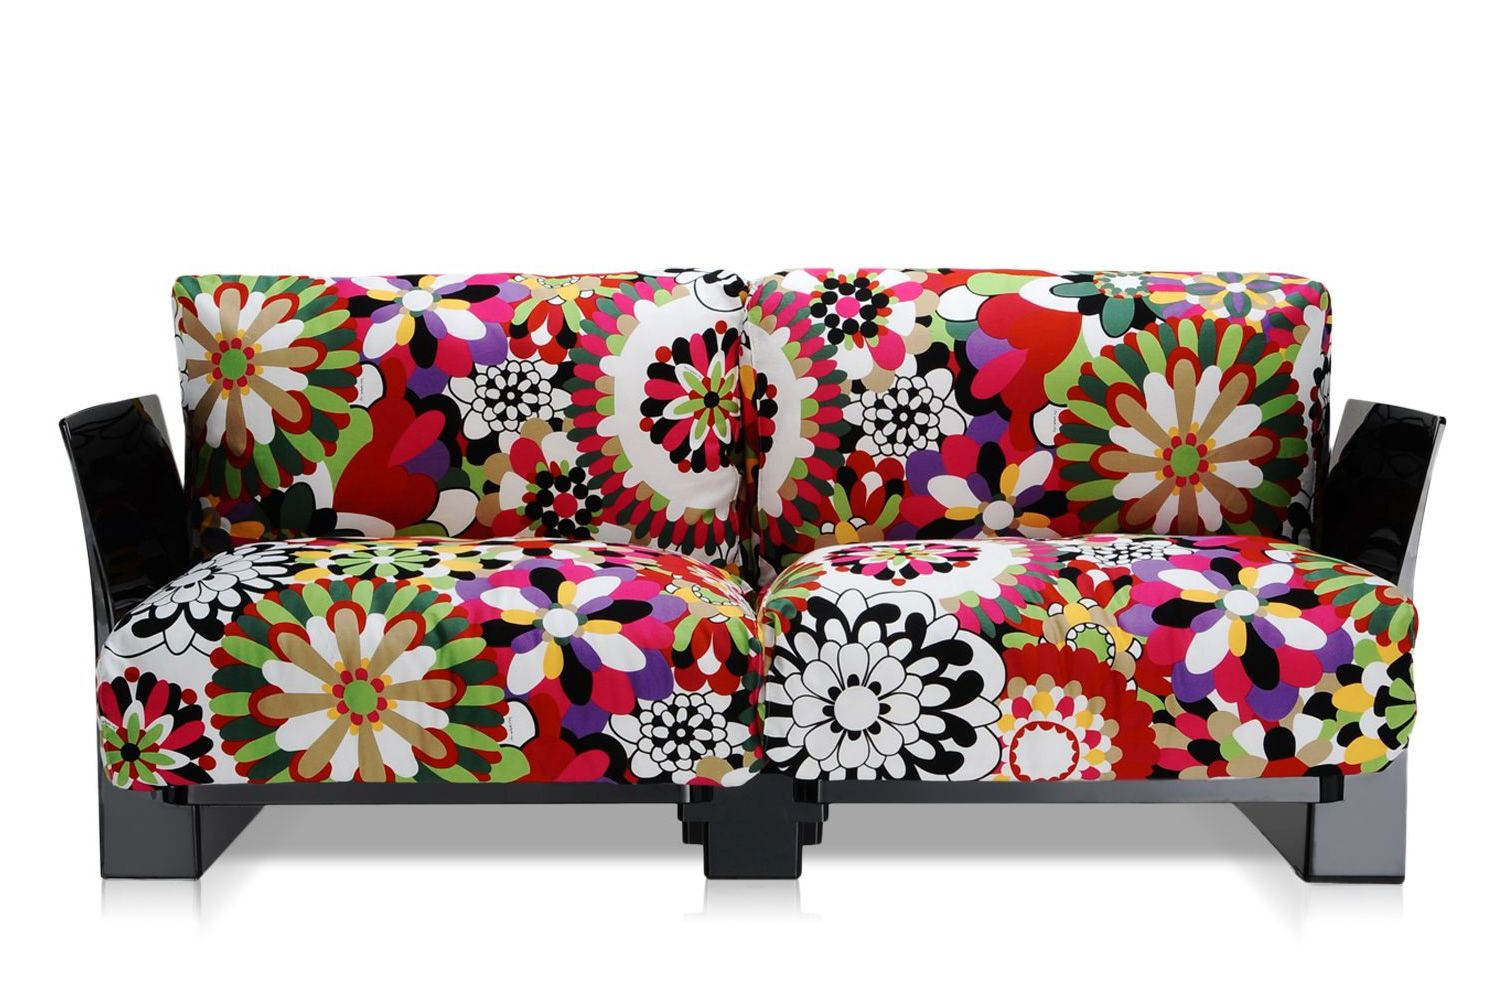 pop missoni sofa divano kartell di design 2 o 3 posti con struttura in policarbonato e. Black Bedroom Furniture Sets. Home Design Ideas